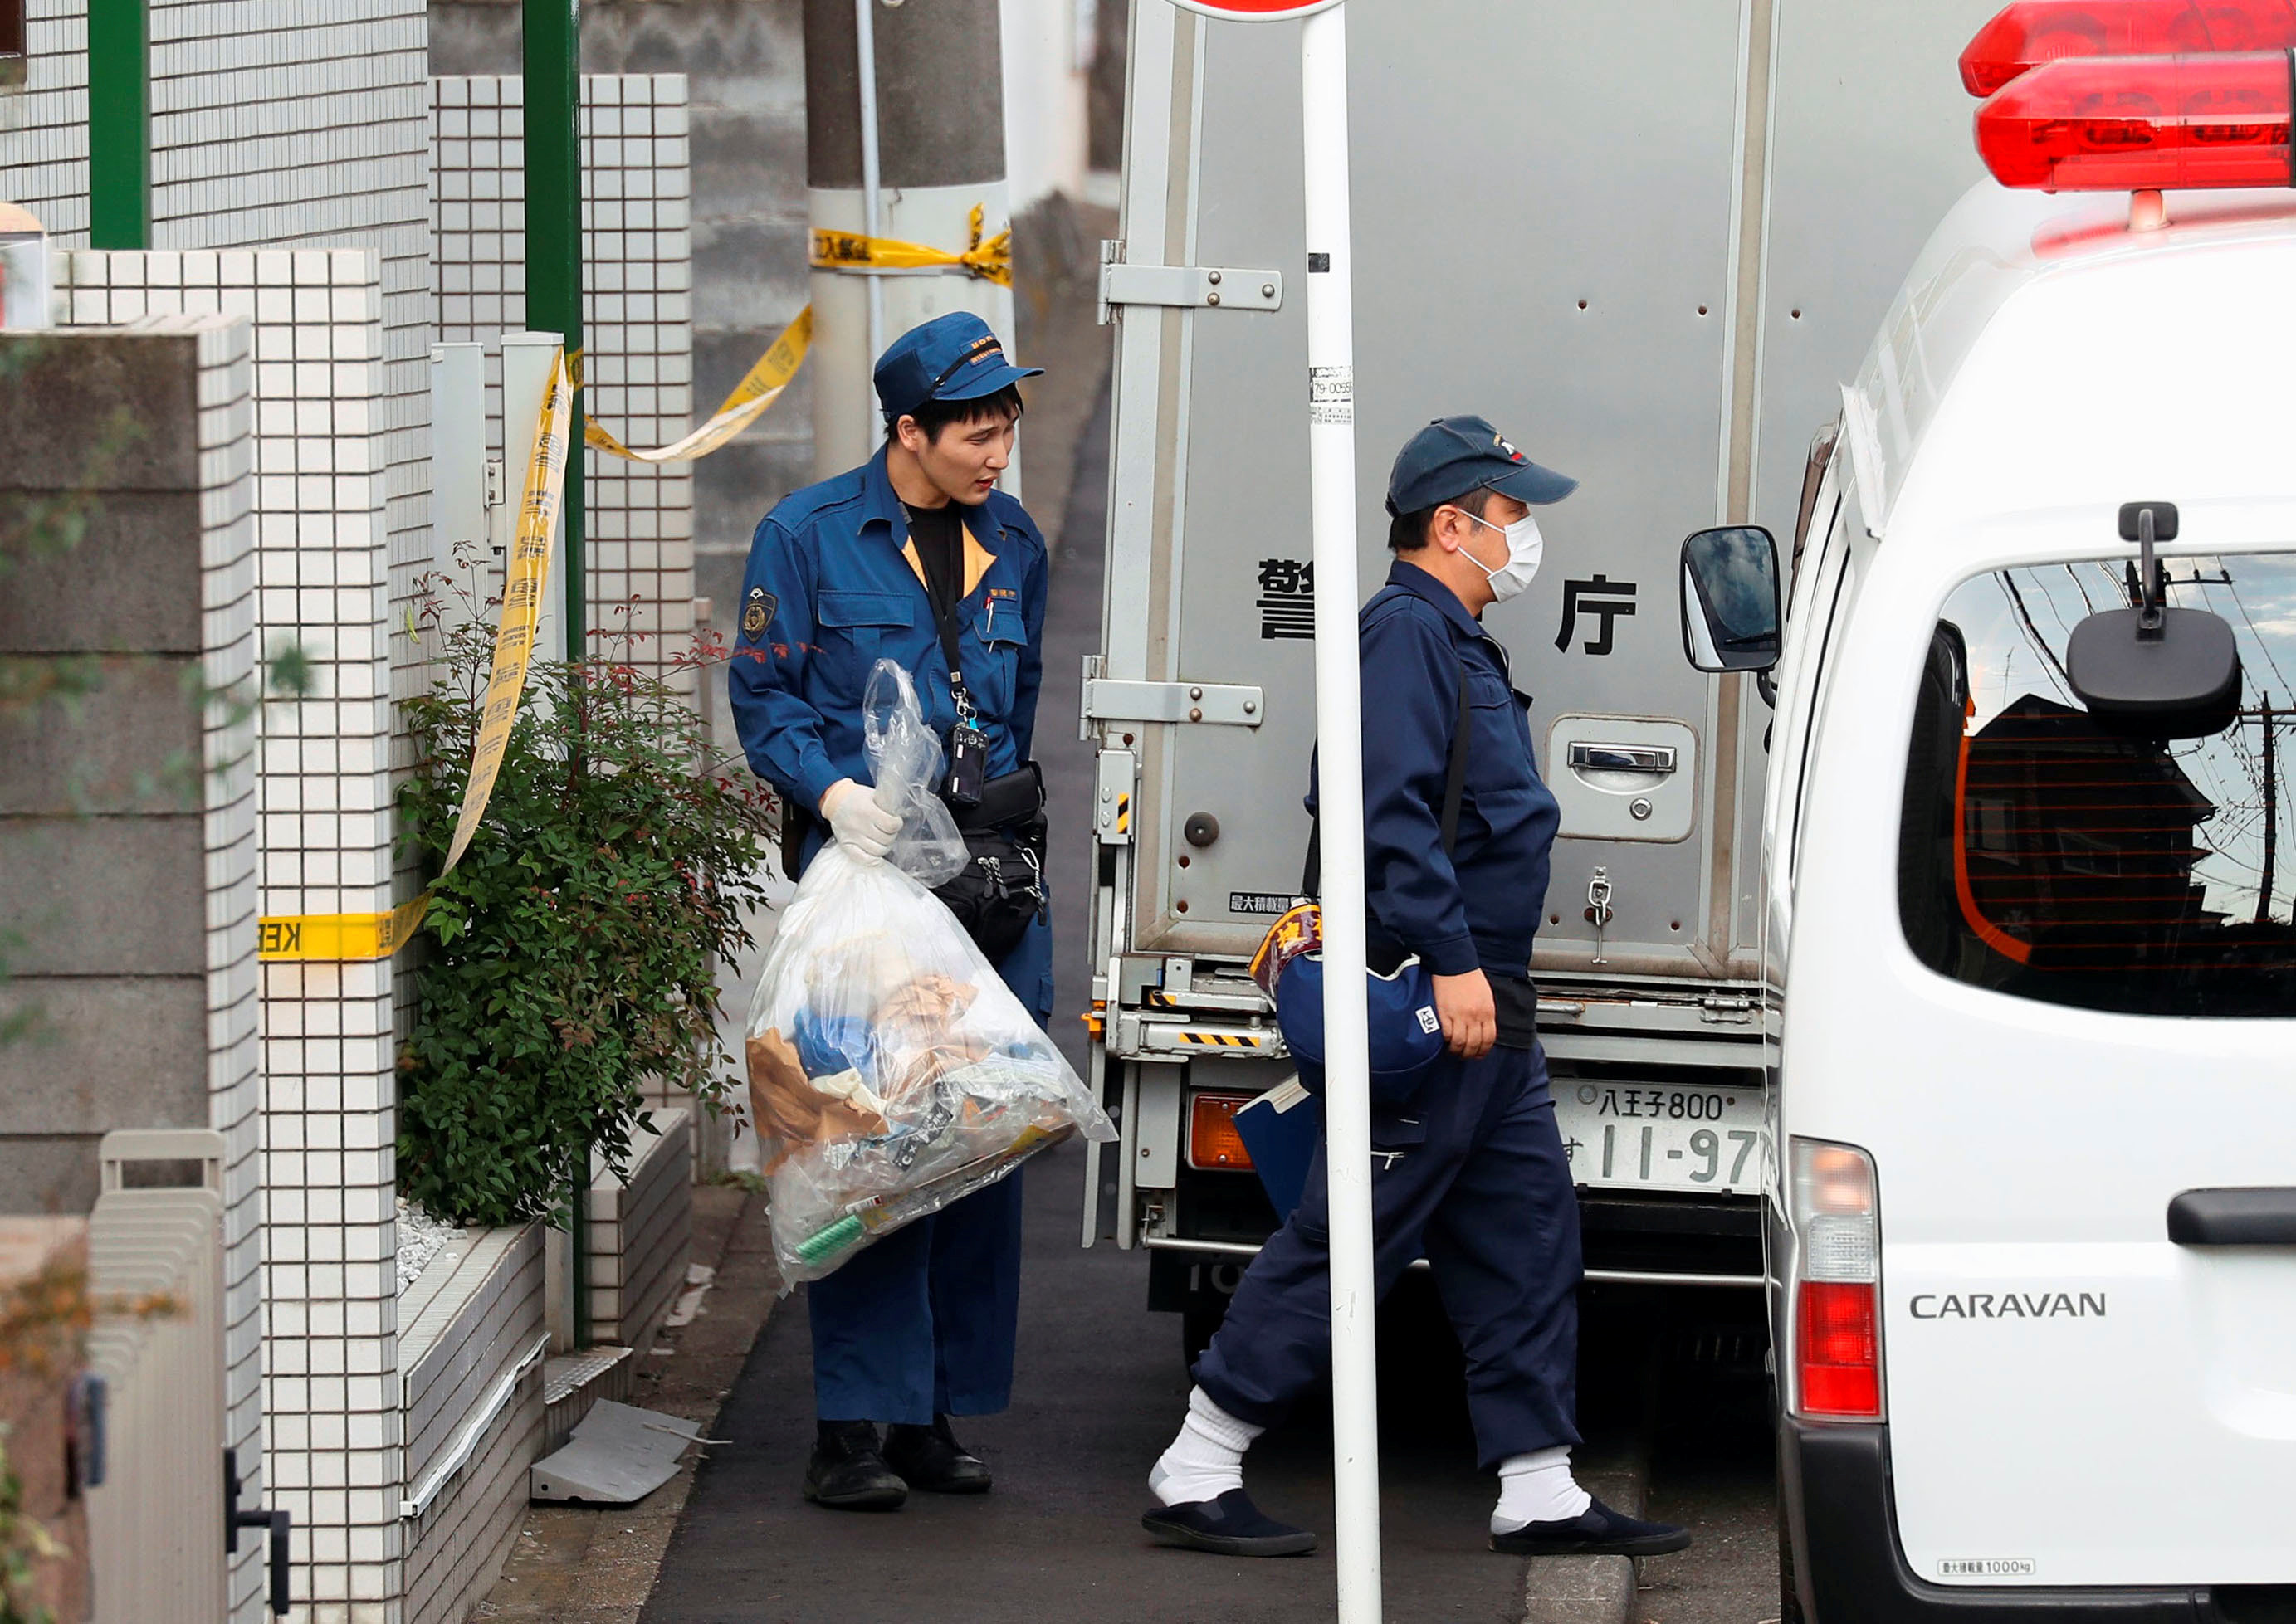 The Police Discovered Pieces of Bones Piled with Rubbish